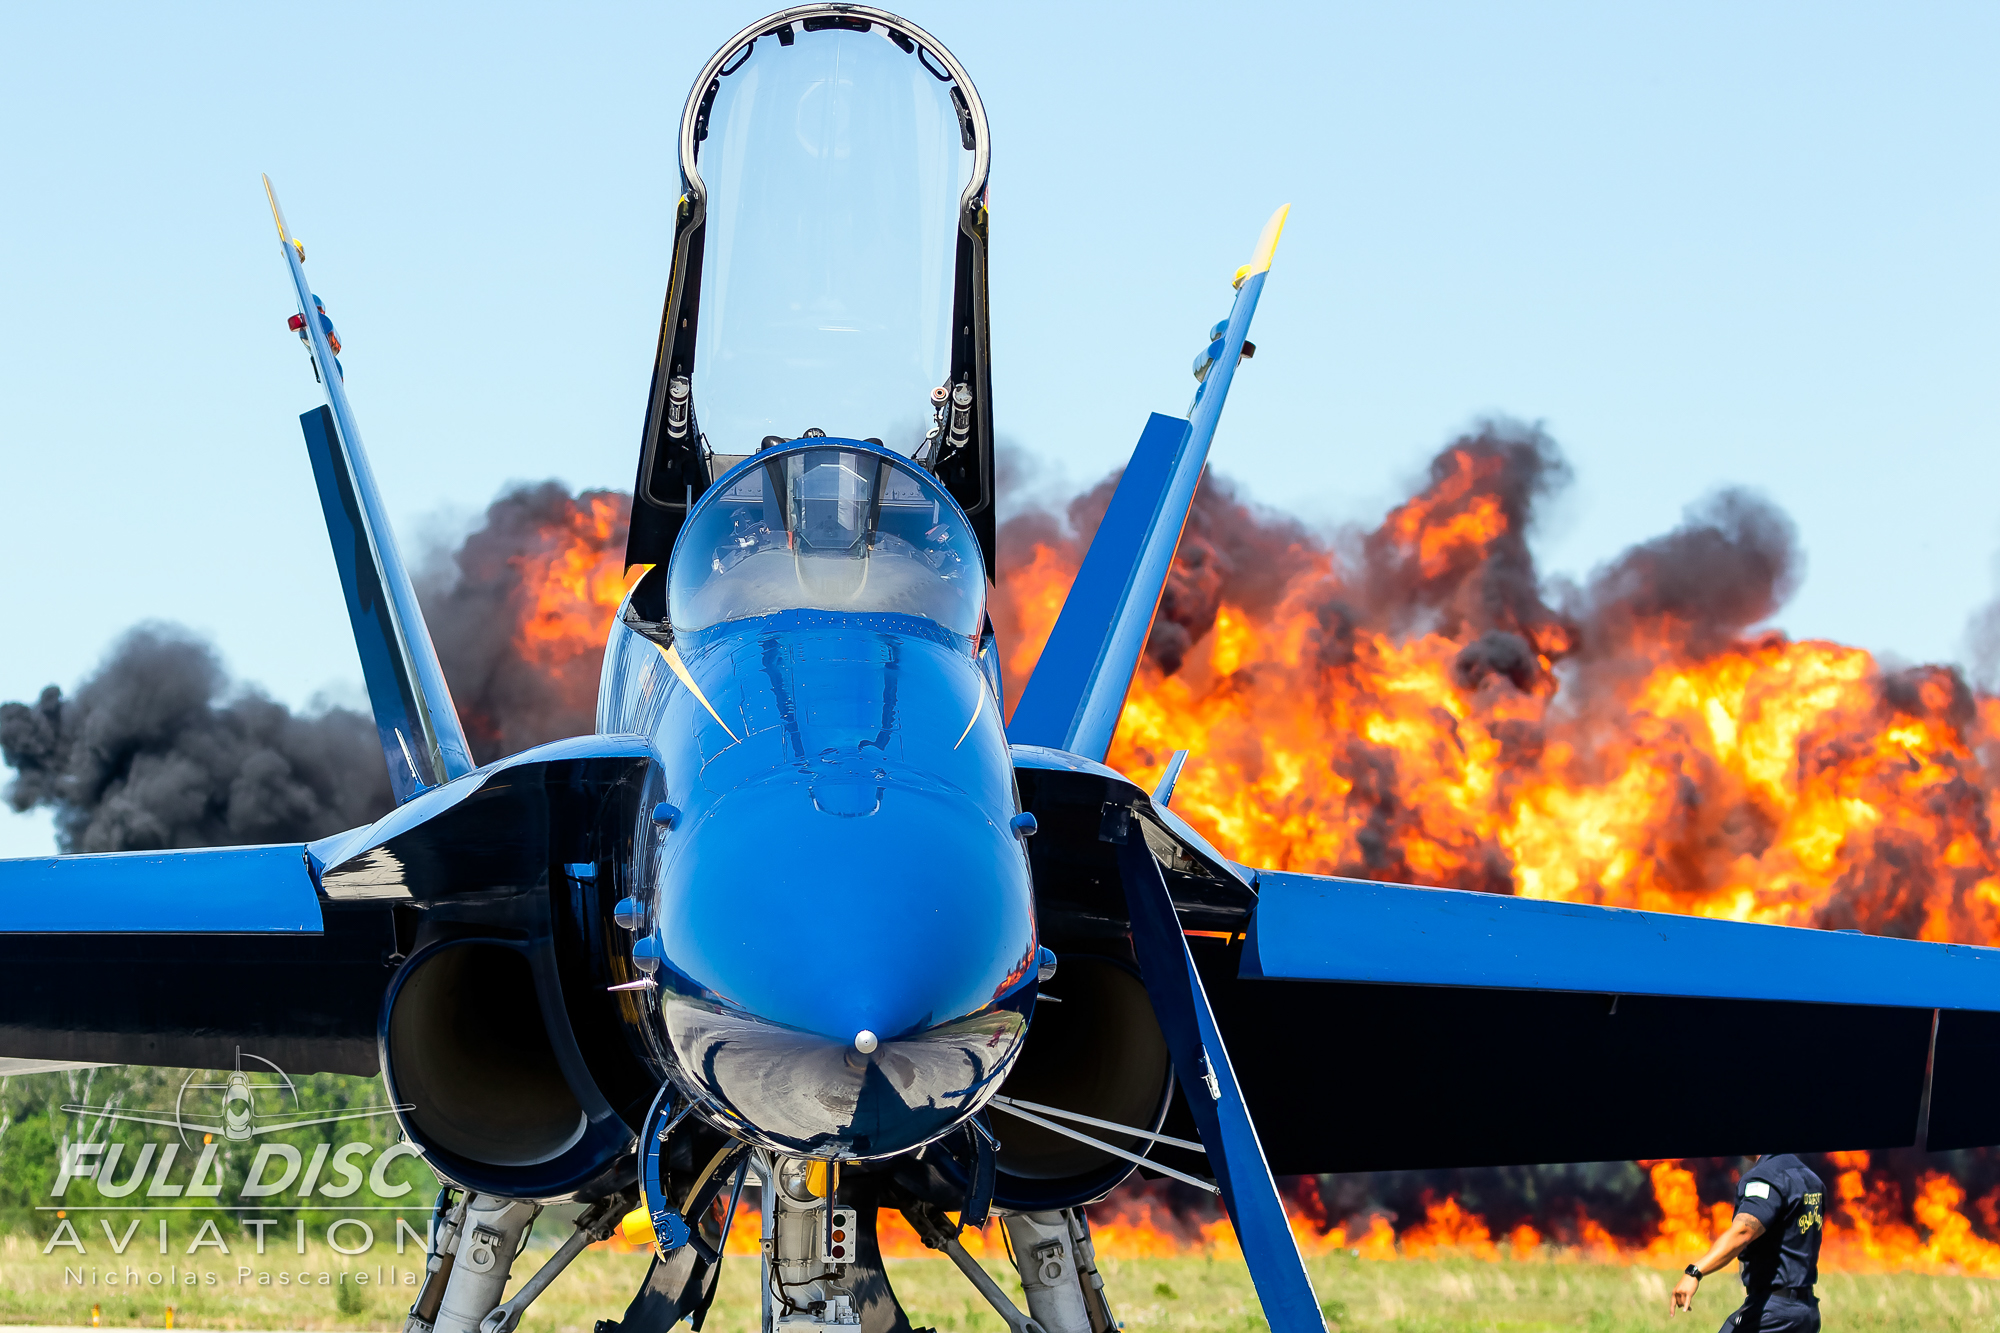 blueangels_fire_nicholaspascarella_fulldiscavation_aviation_airshow.jpg